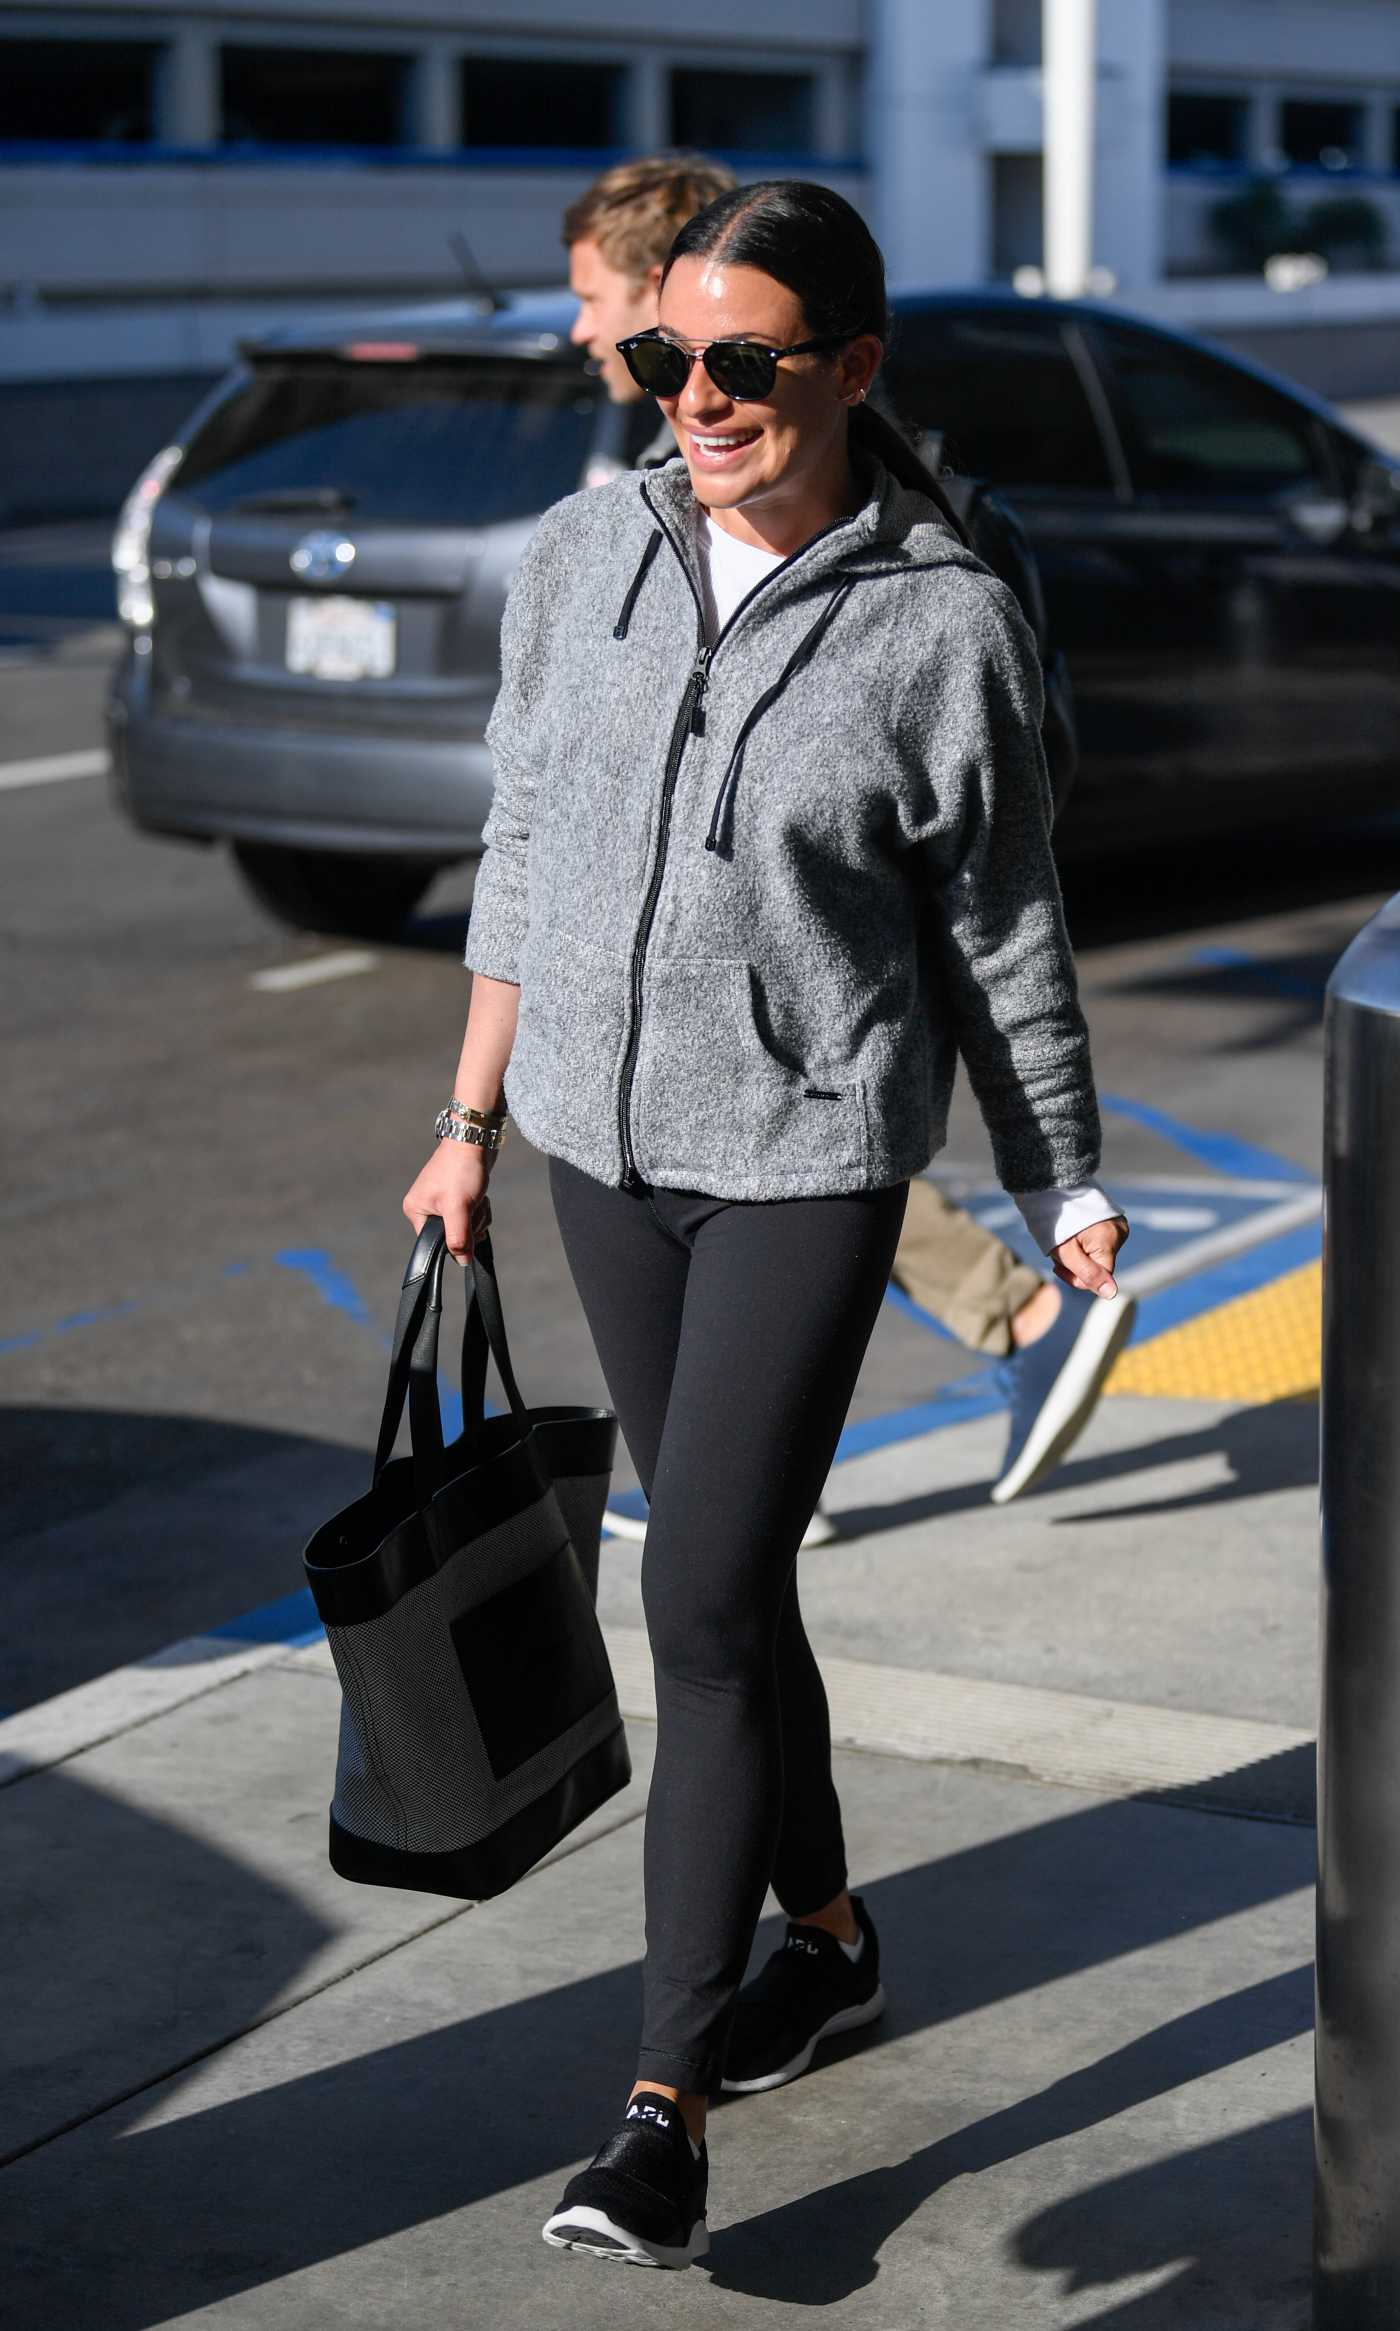 Lea Michele Out with Her Husband Zandy Reich Arrives at LAX Airport in LA 05/28/2019